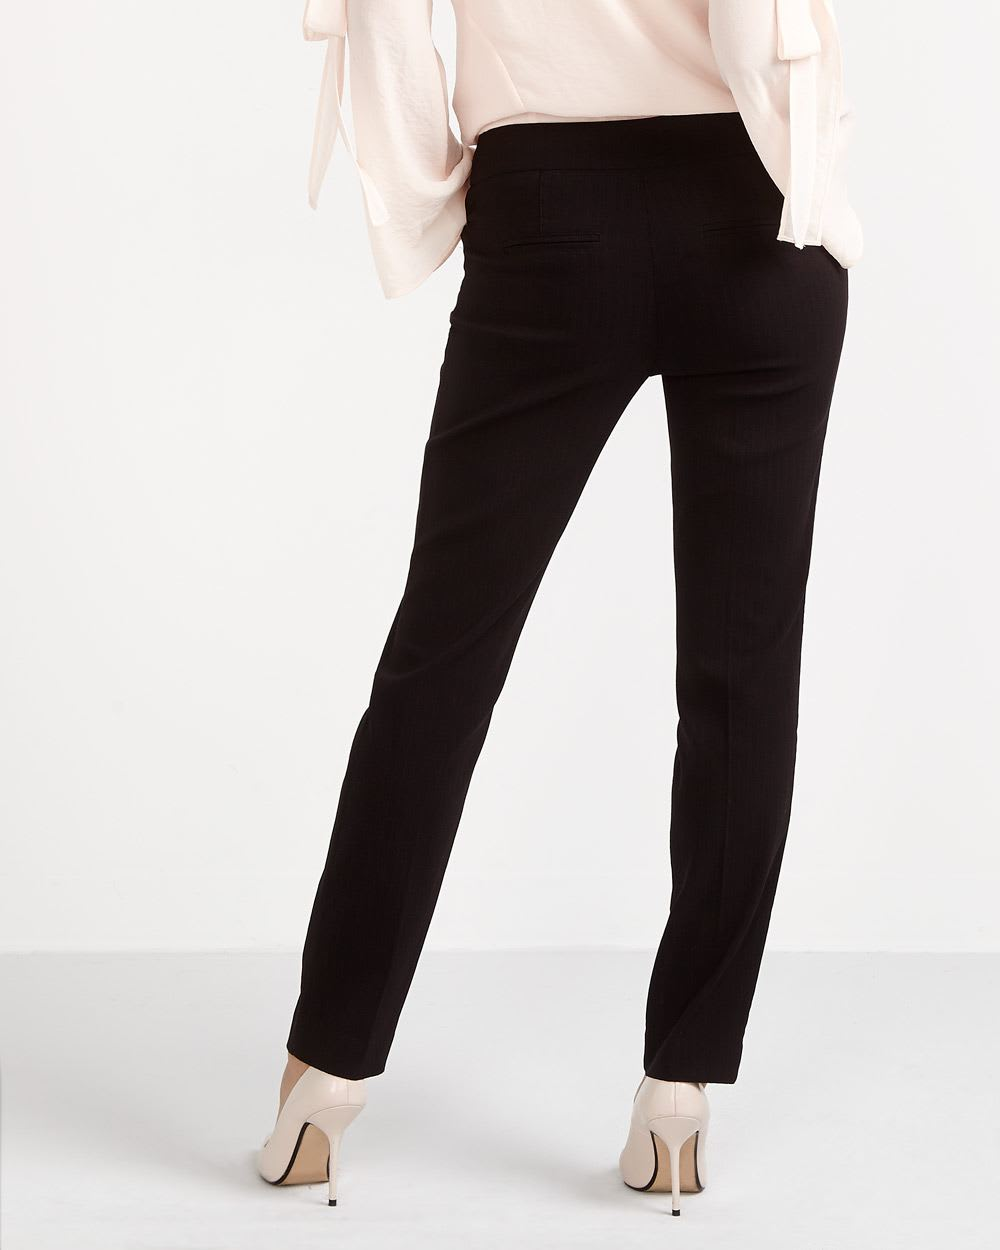 The Petite Iconic Pattern Straight Leg Pants